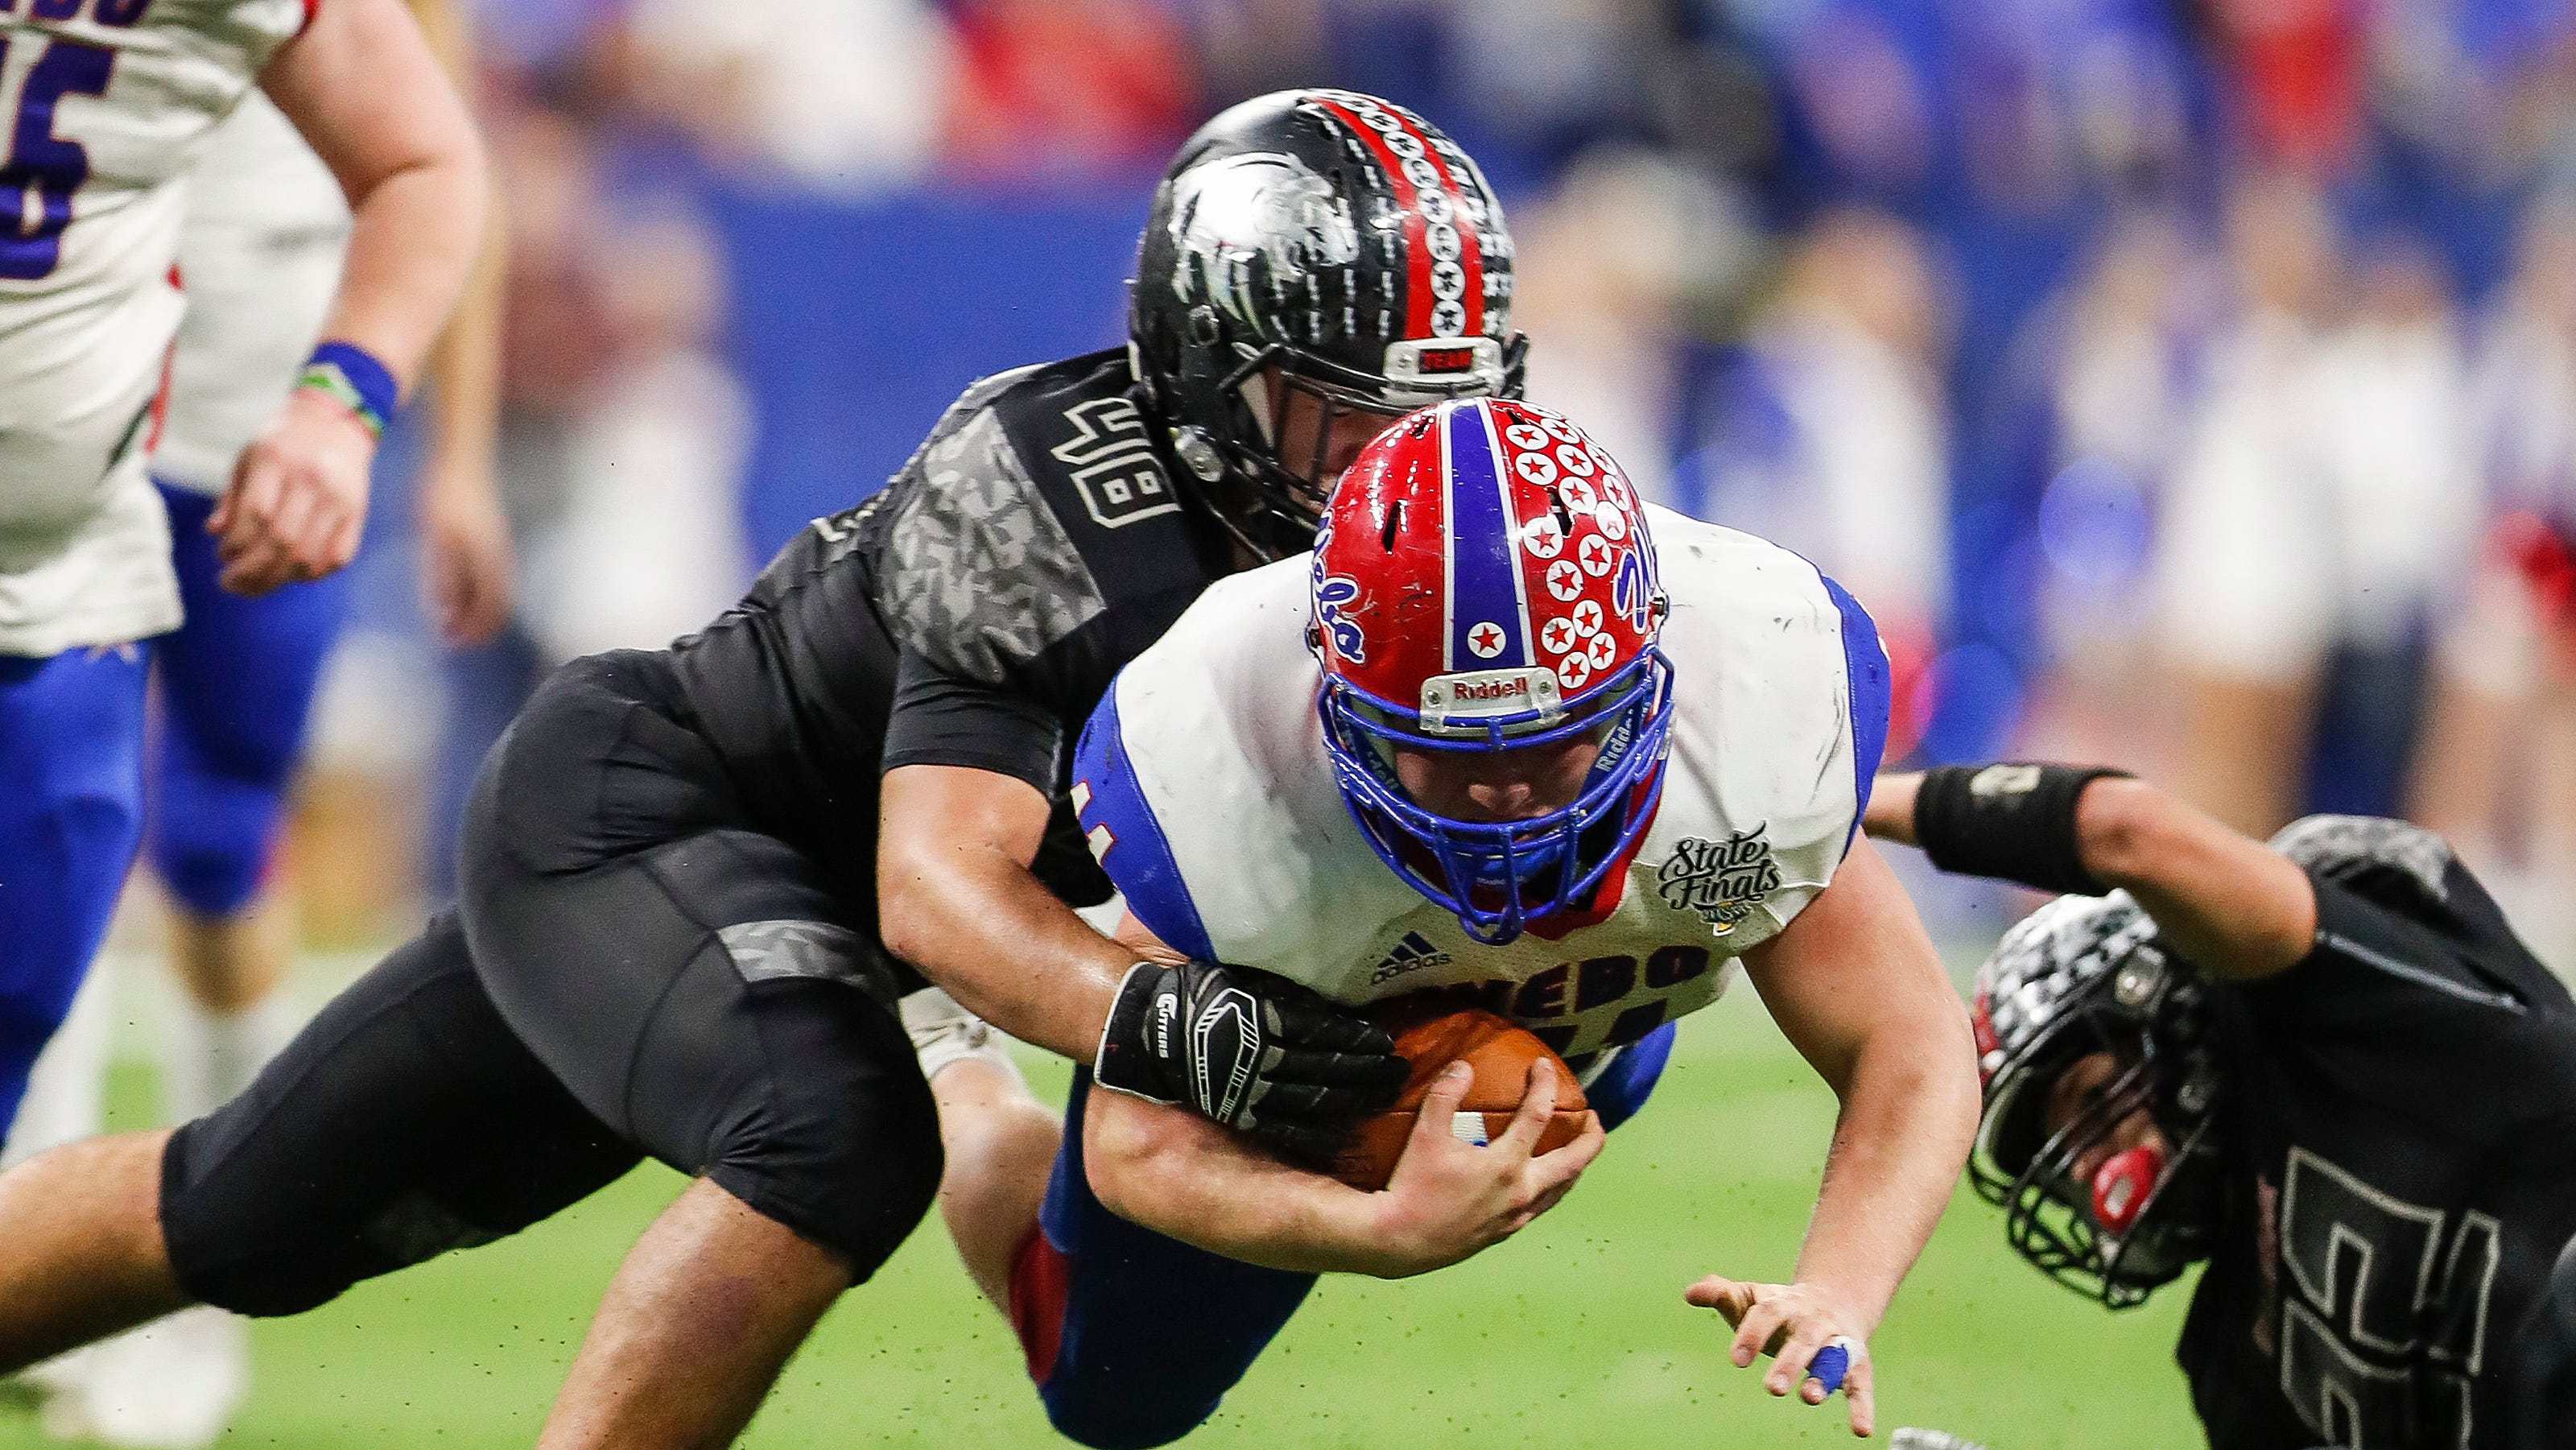 Viewer's guide: How and what to watch in IHSAA playoffs in football, soccer, volleyball, tennis, cross-country